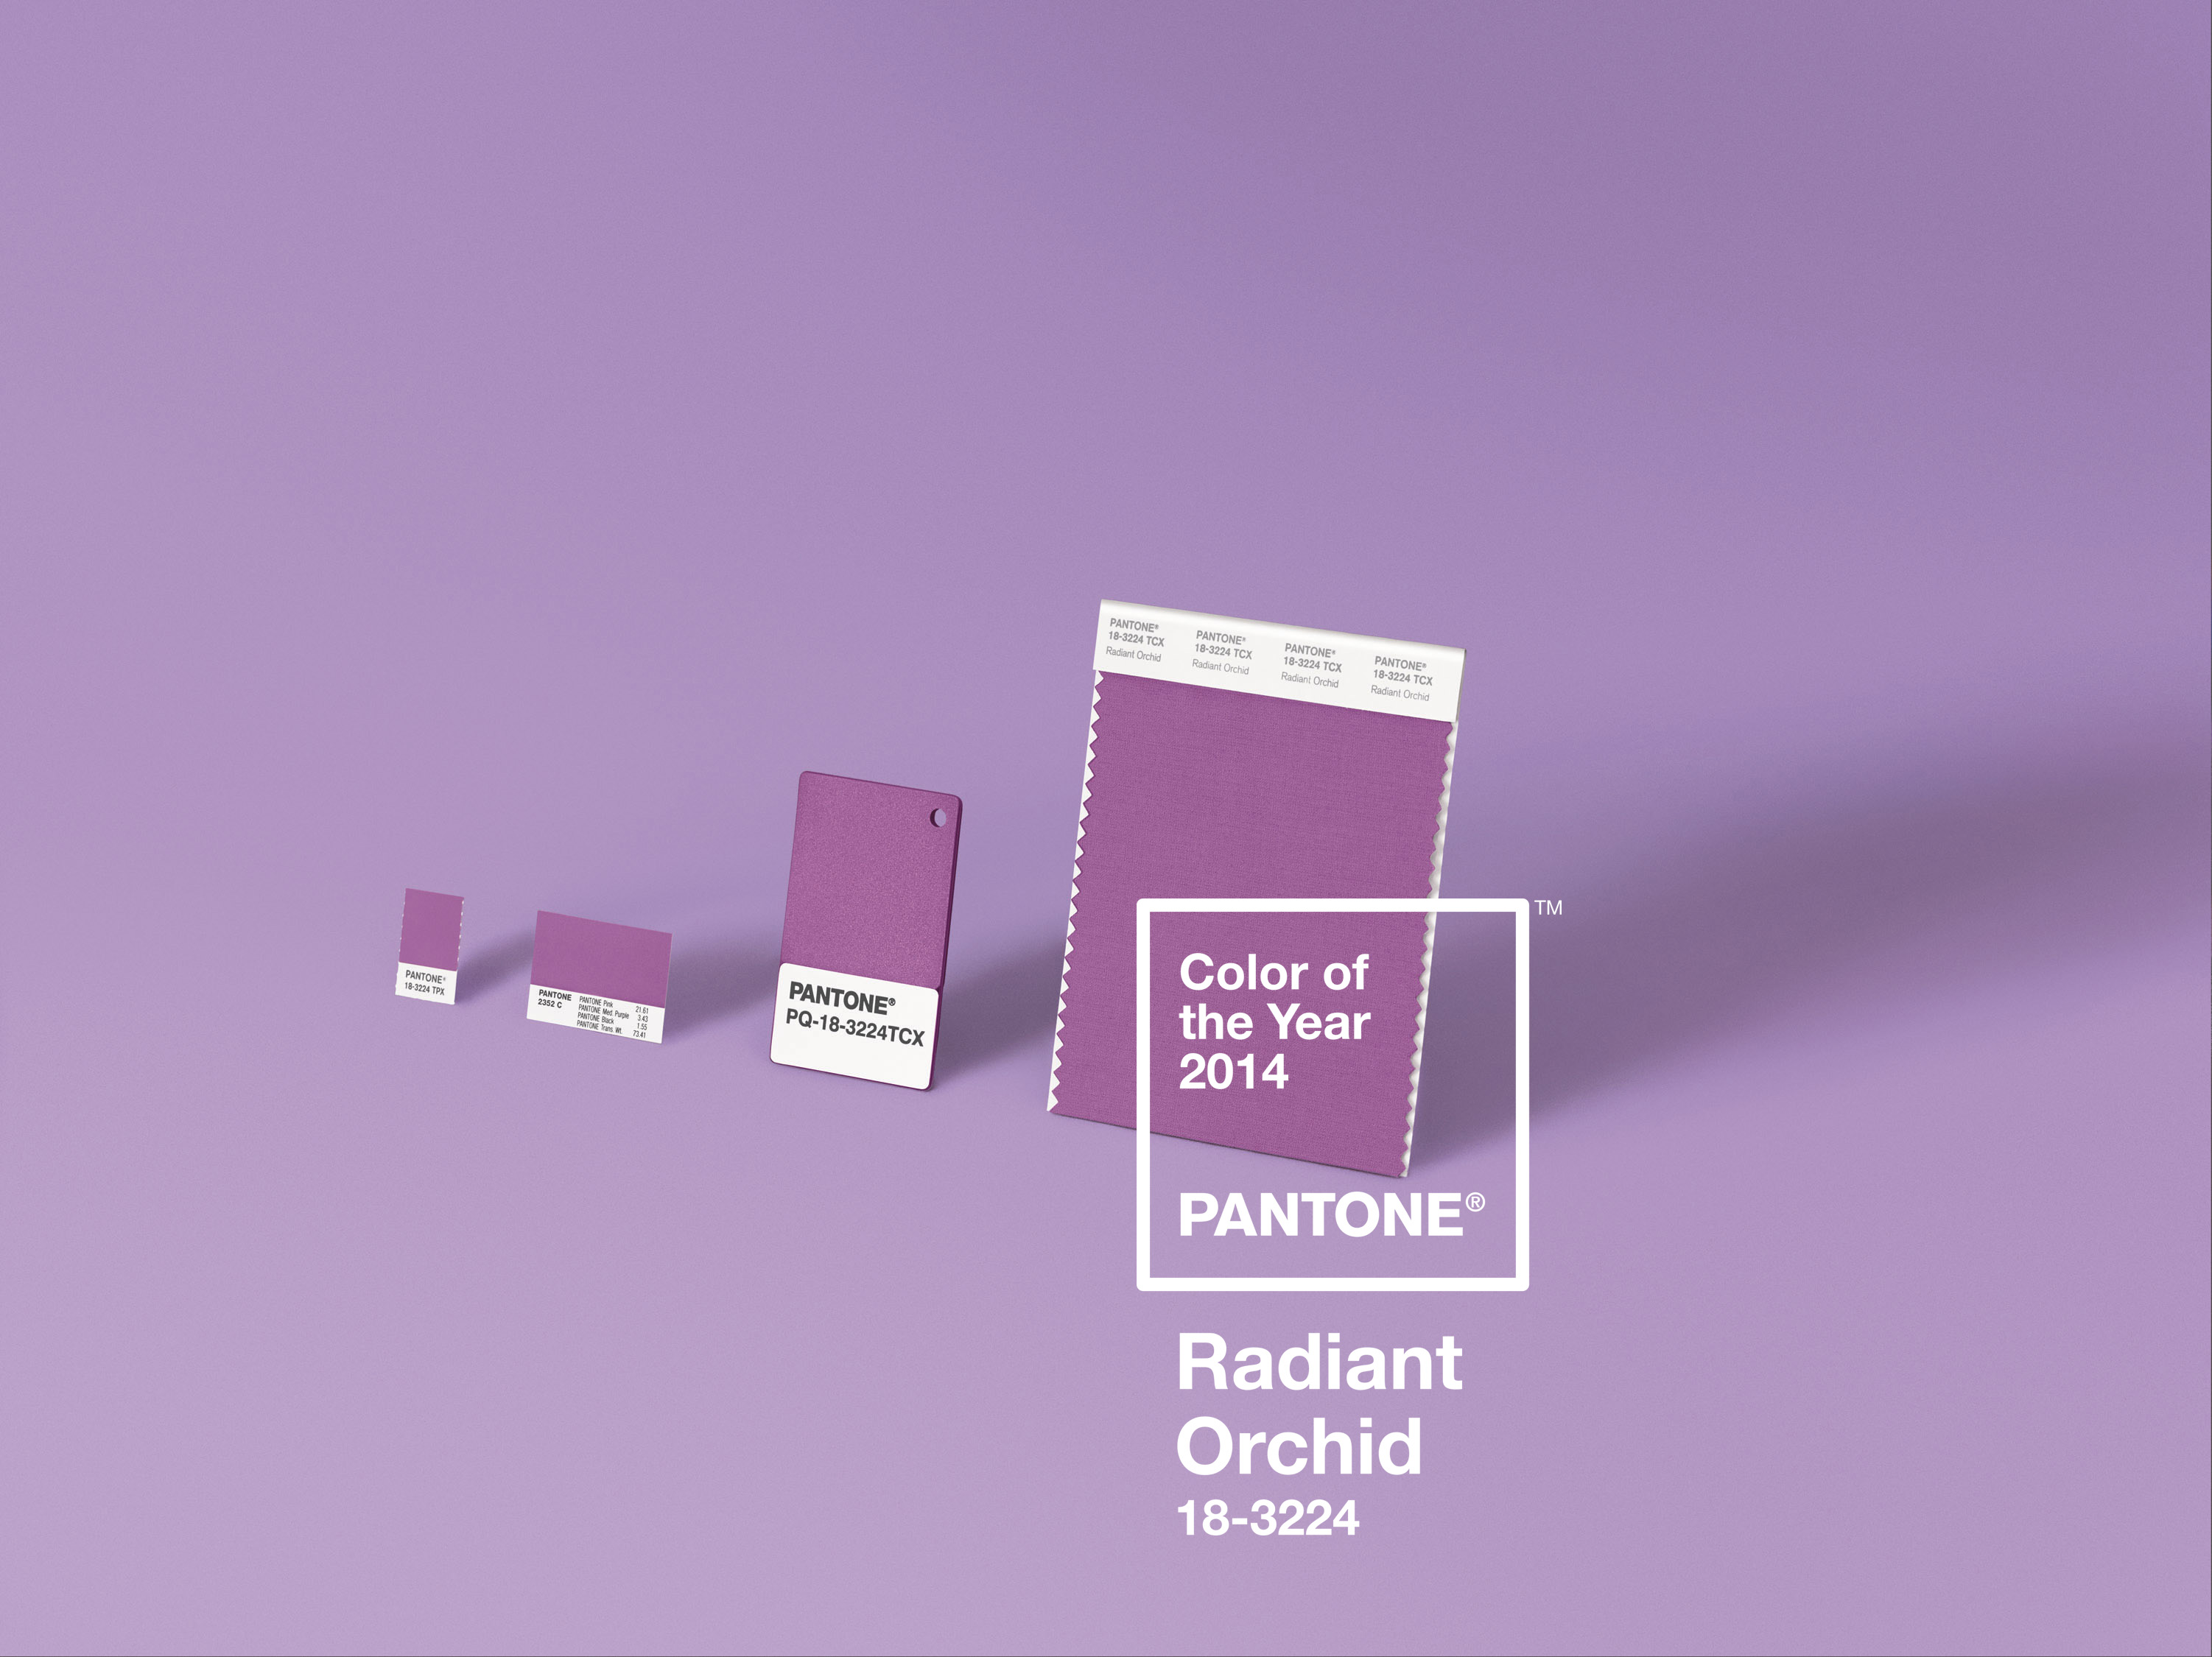 Are You Ready for Pantone Color of the Year 2018? Here's a Recap! pantone color of the year 2018 Are You Ready for Pantone Color of the Year 2018? Here's a Recap! Pantone Color of the Year a Quick Recap Before the Big Announcement 3